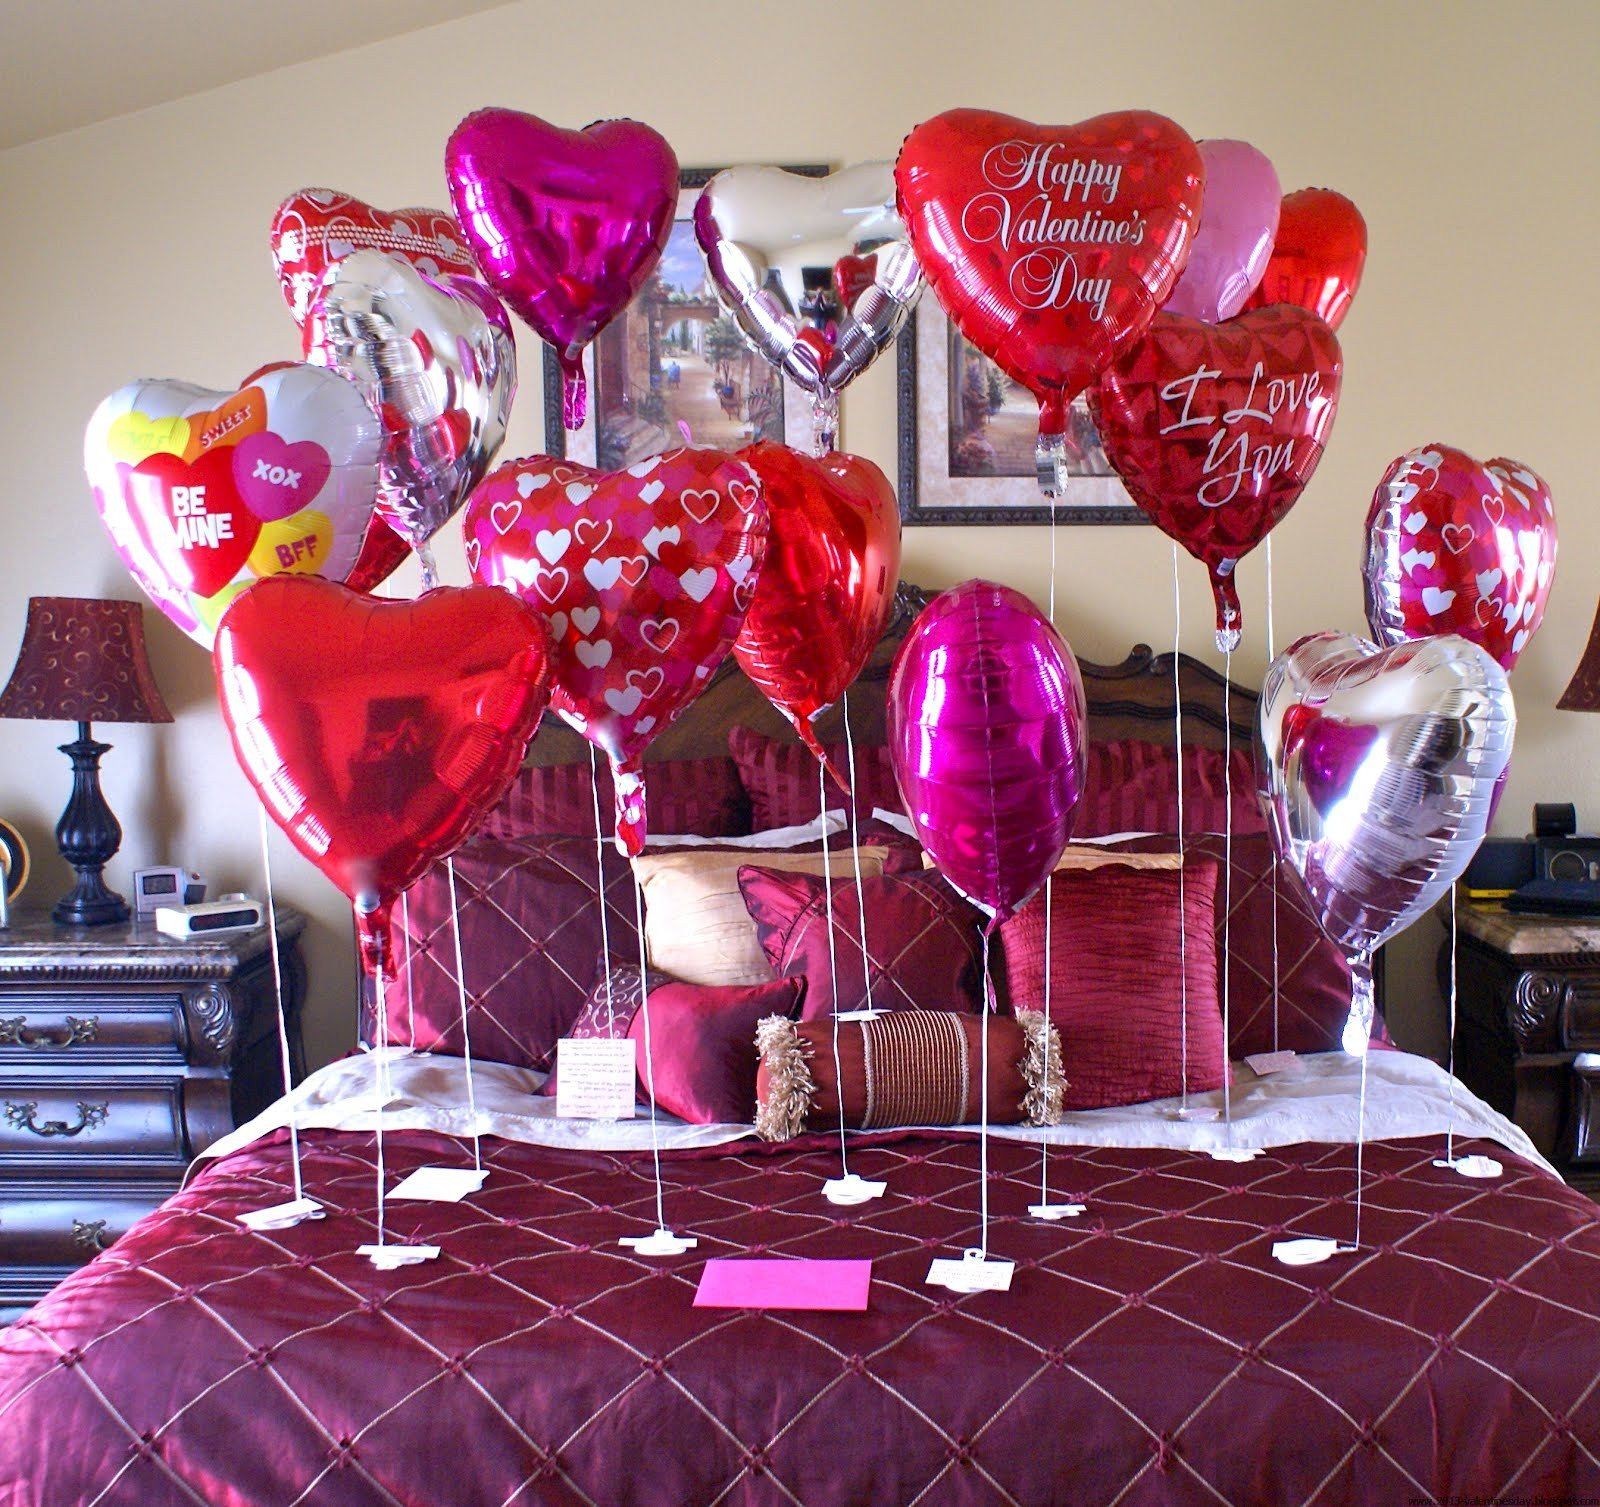 Best Valentine S Day Bed Room Decoration Ideas 2016 With Pictures